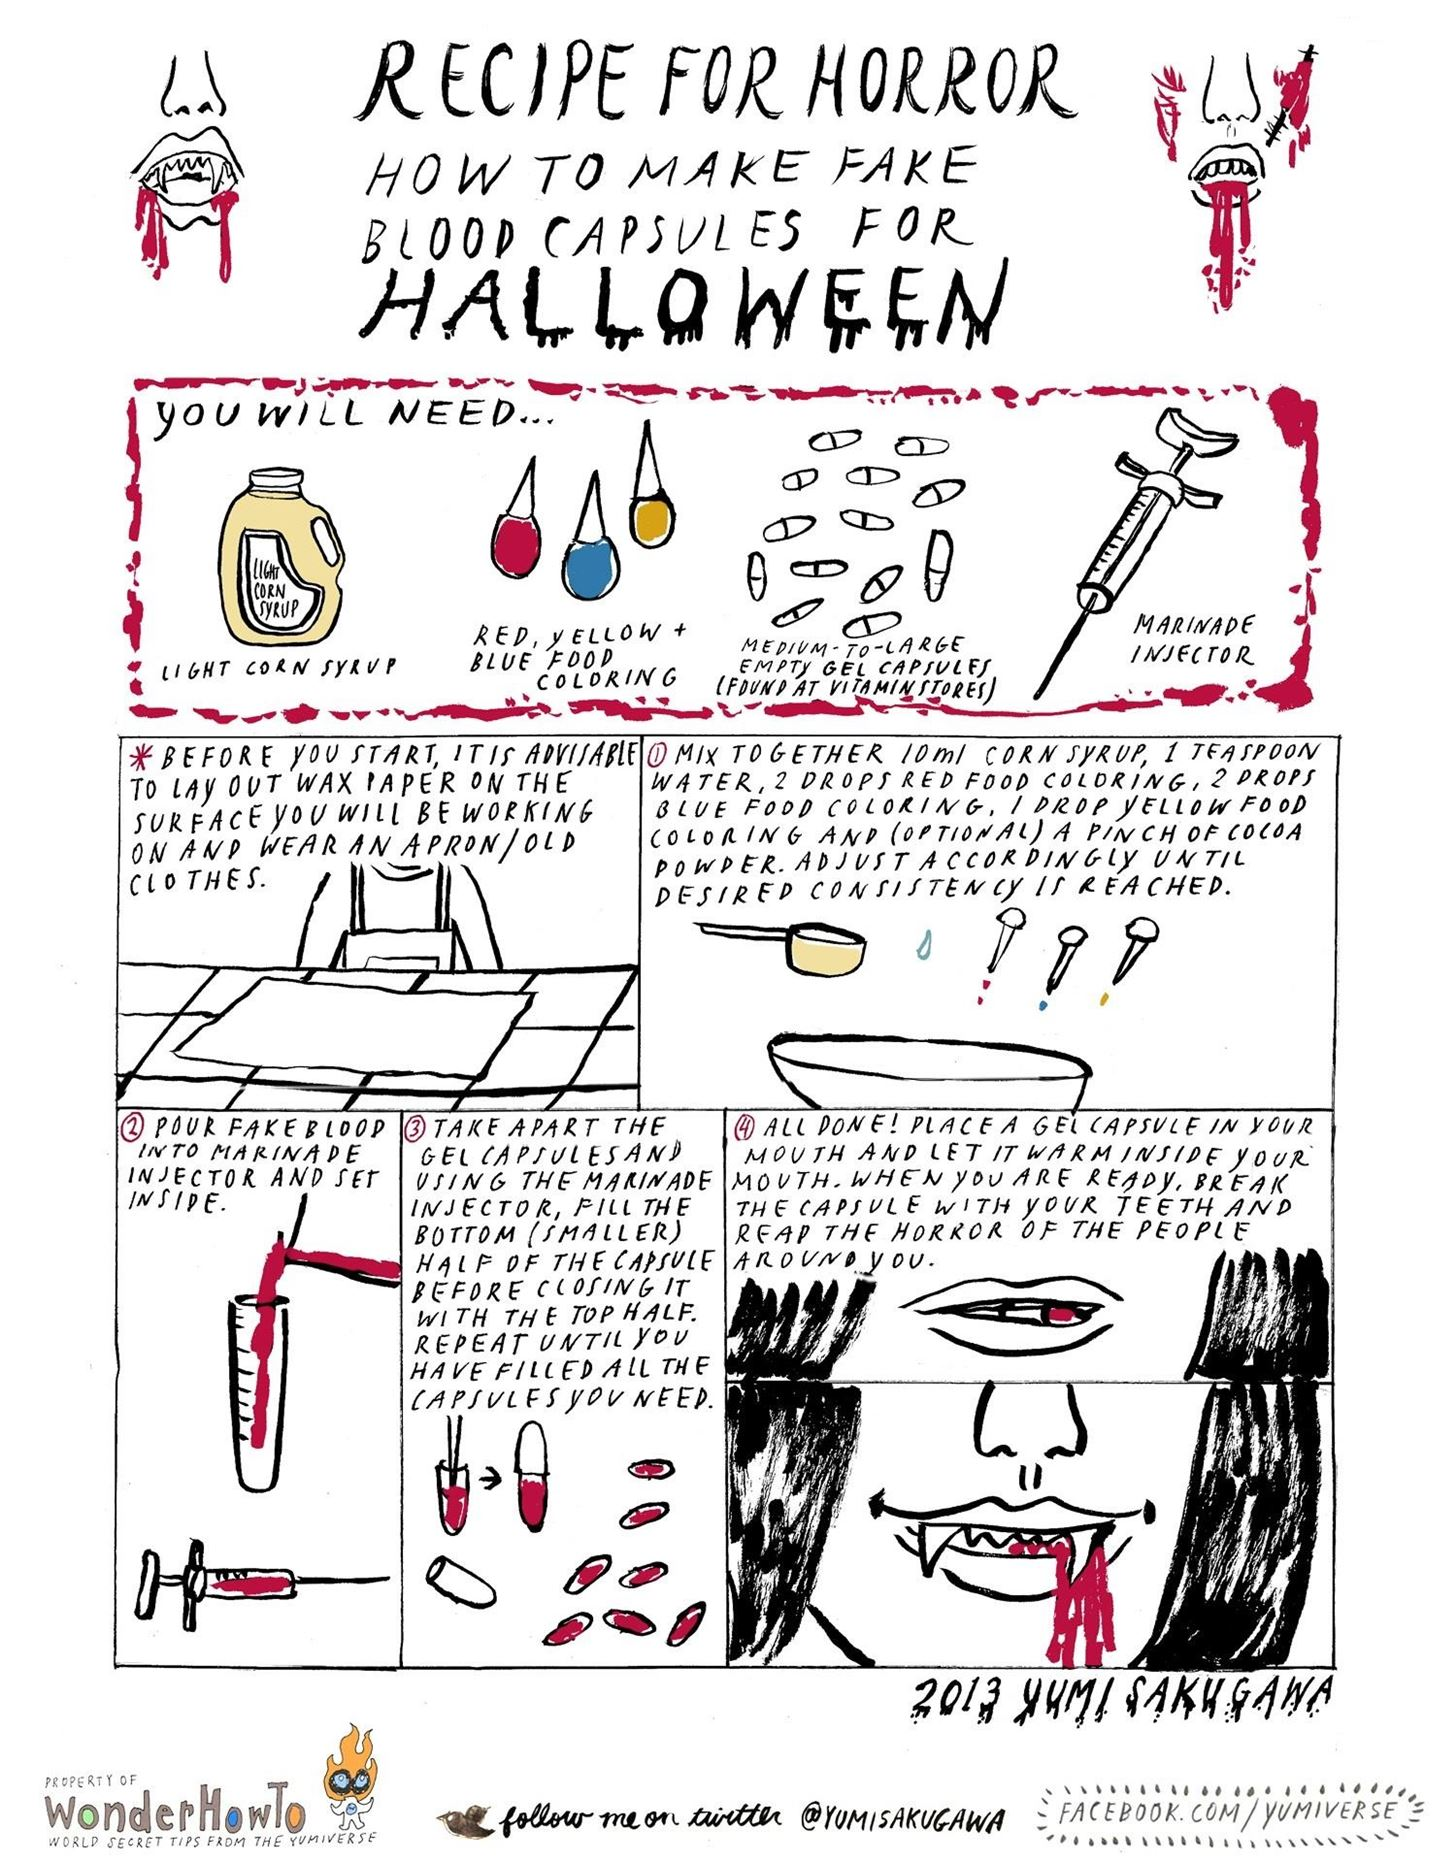 Recipe for Horror: How to Make Fake Blood Capsules for Halloween